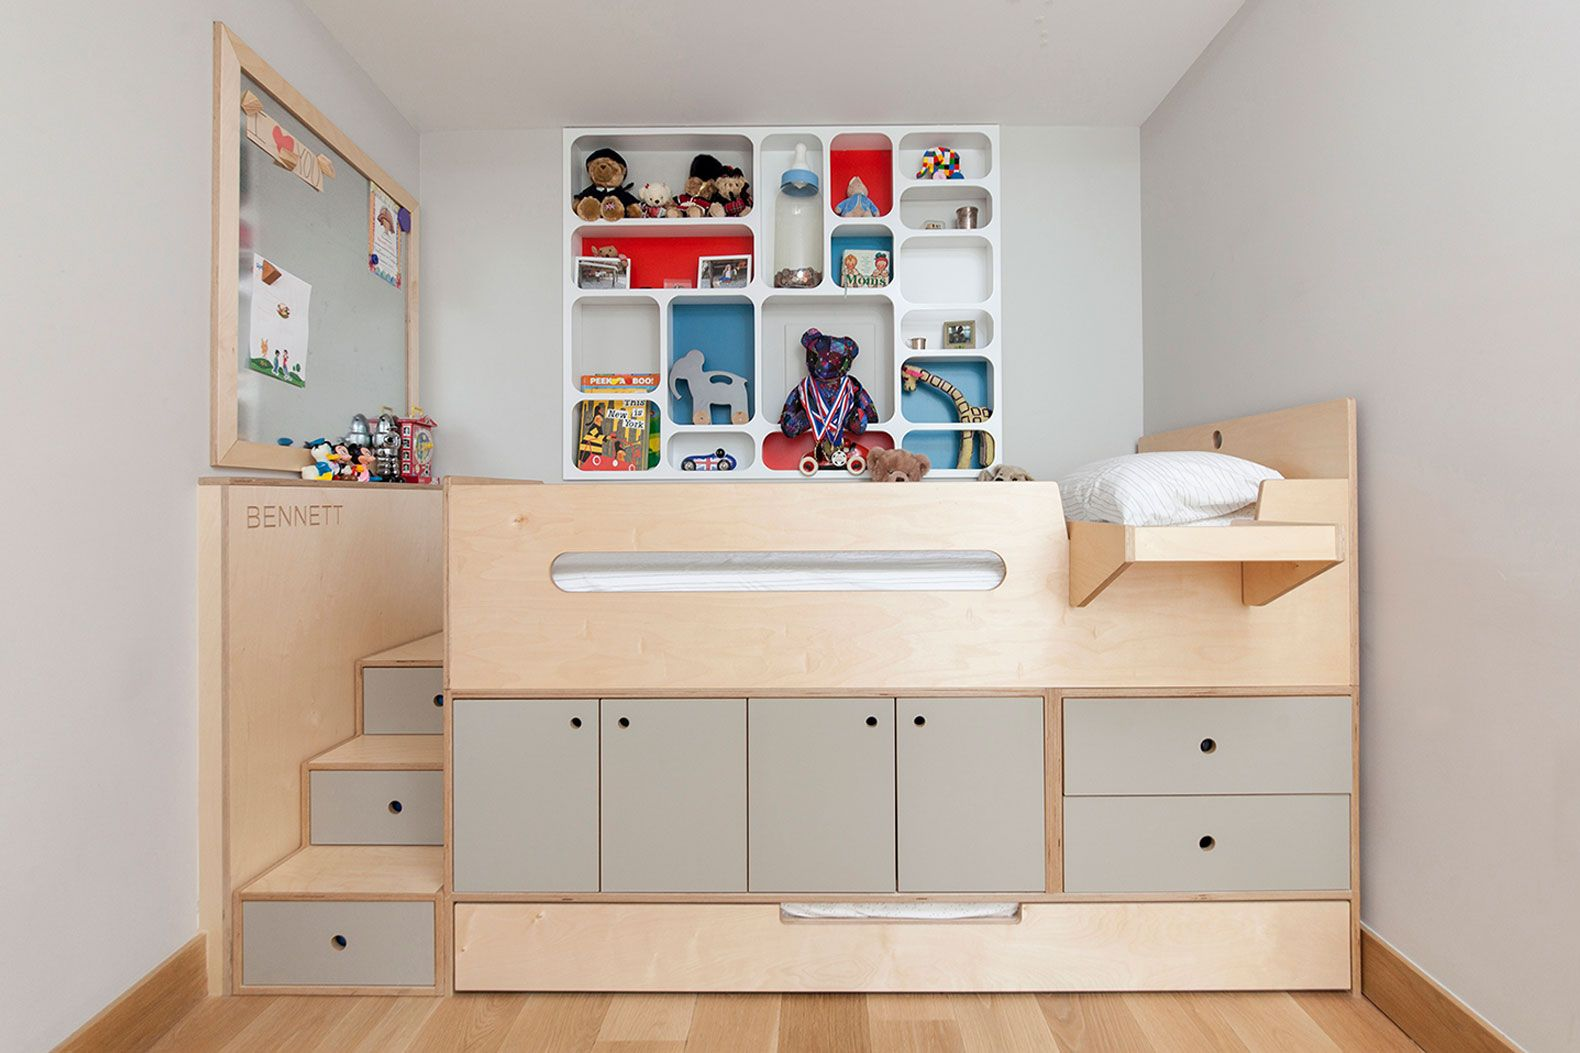 Casa Kids\' clever sleeping loft is a storage bed on steroids